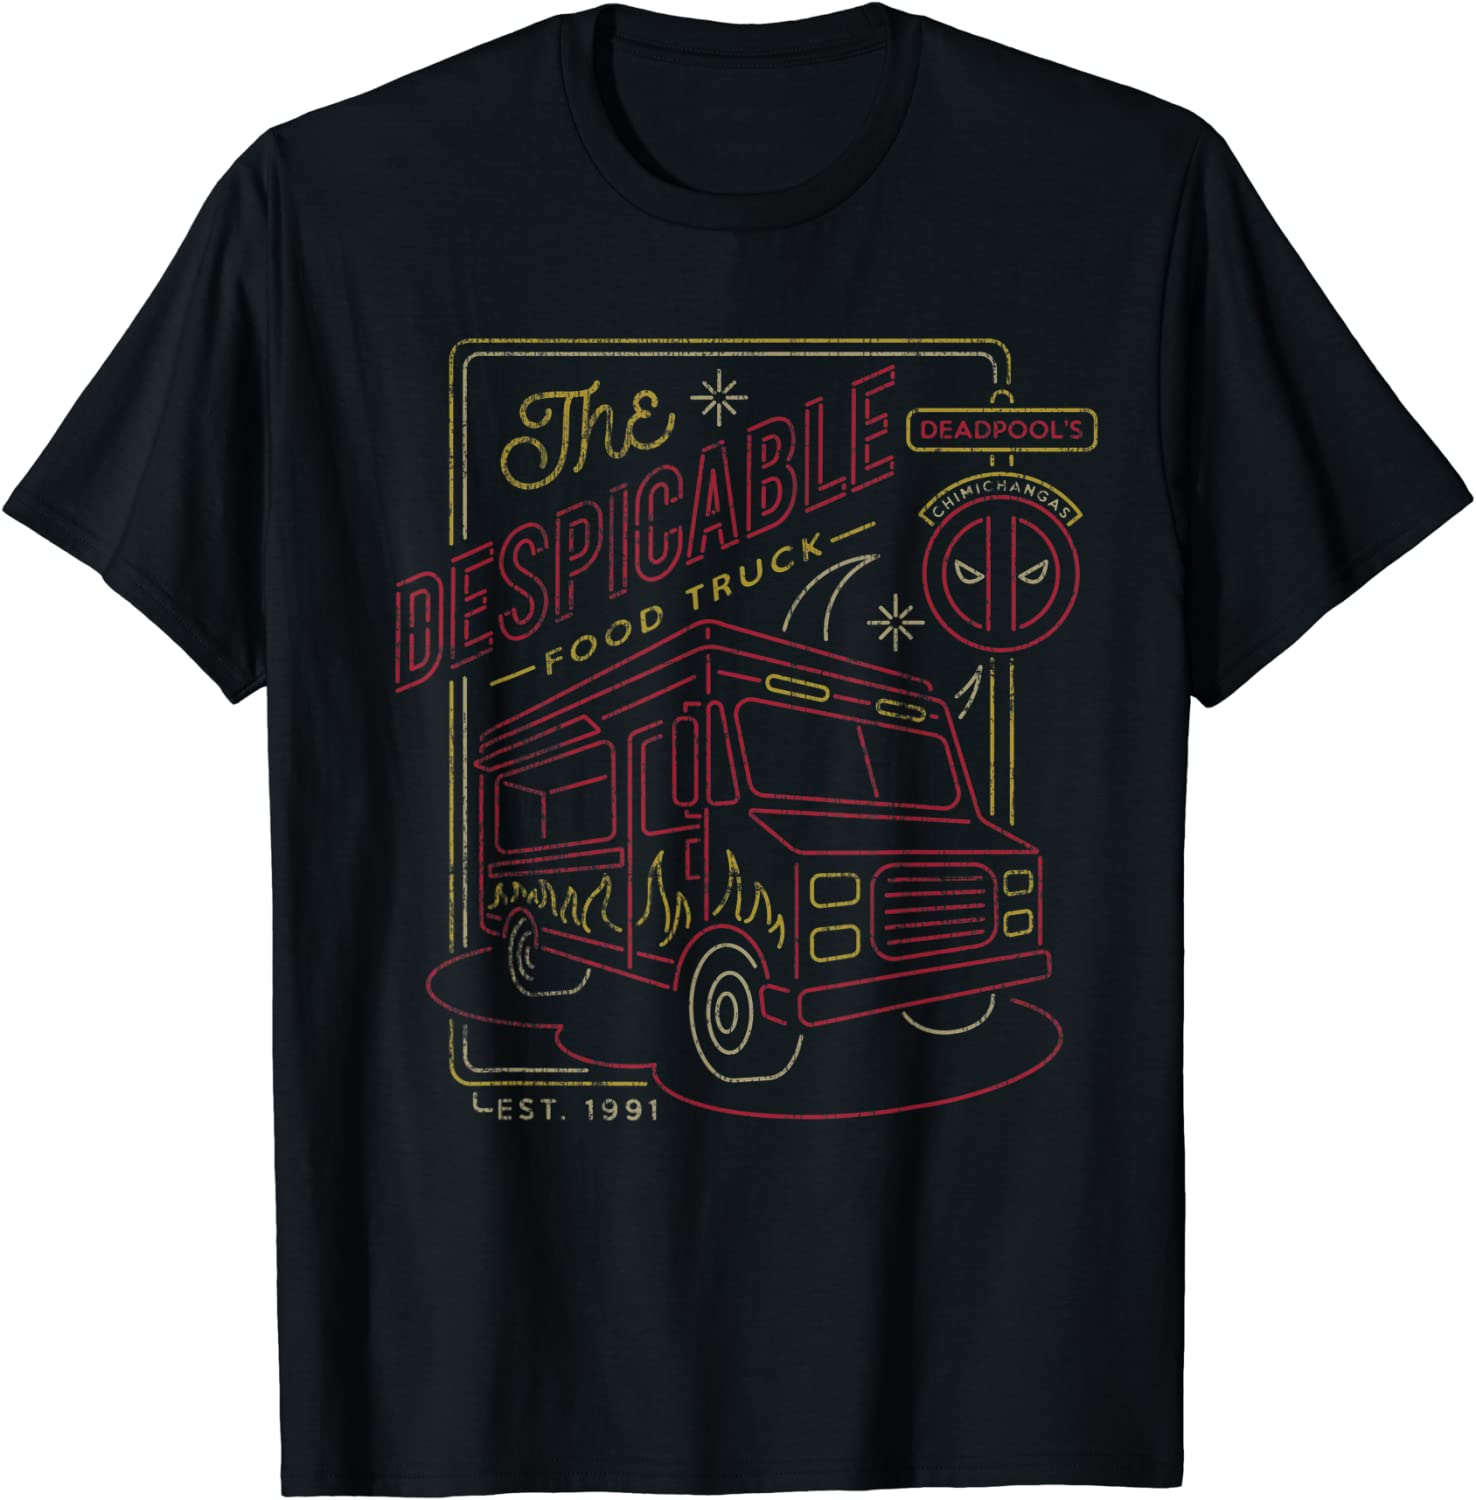 Marvel Deadpool Chimichangas Despicable Food Truck T-Shirt